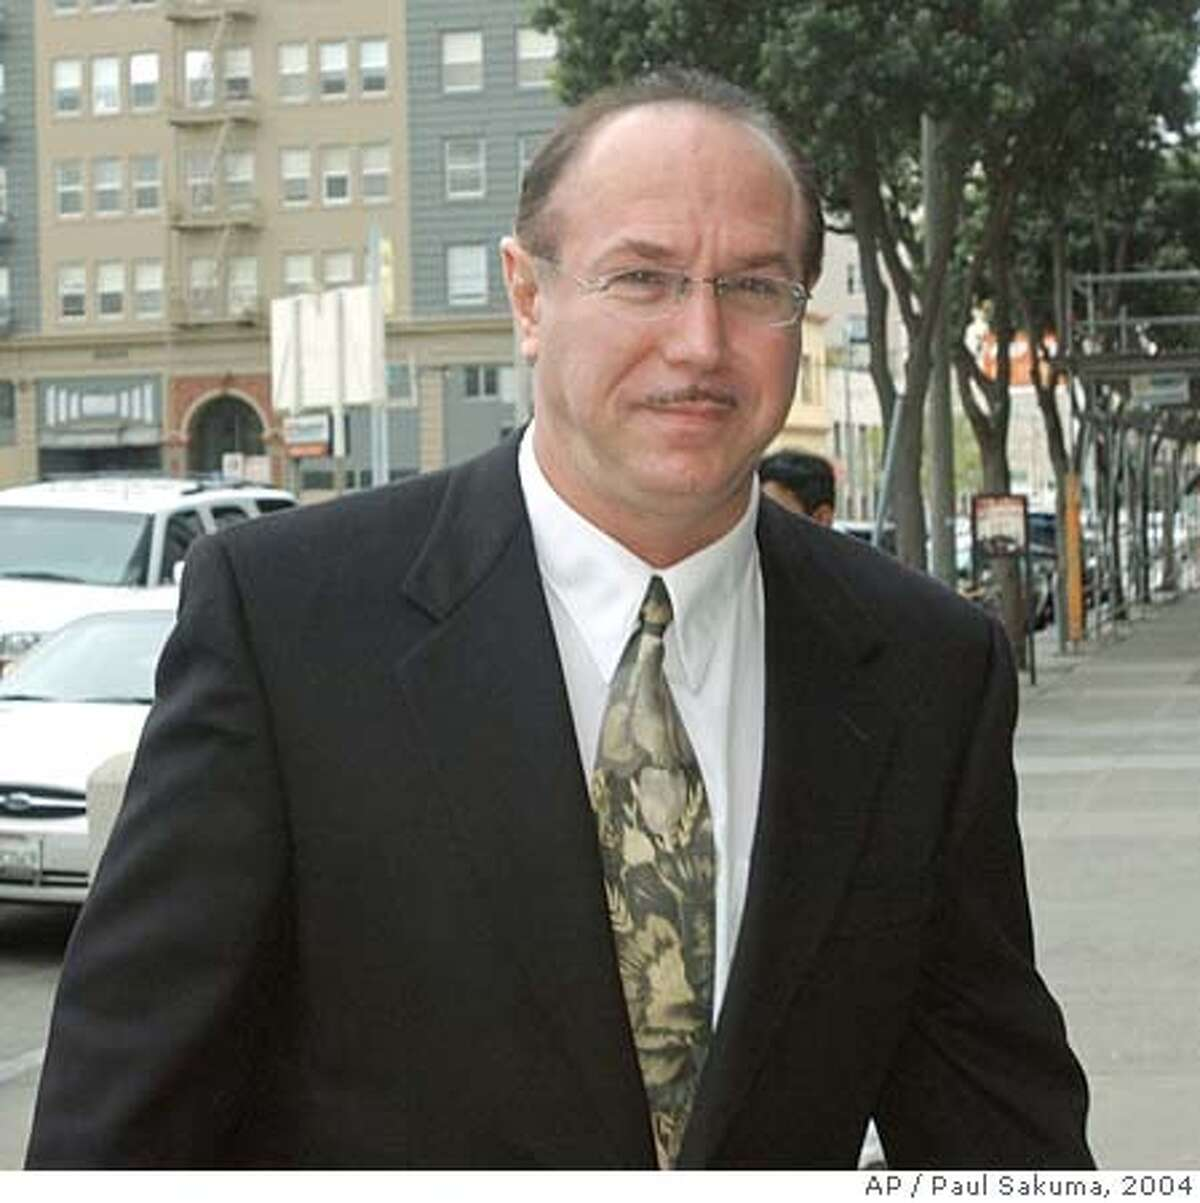 ** FILE ** Victor Conte, San Francisco Giants Barry Bonds' nutritional adviser and founder of the Bay Area Laboratory Co-Operative (BALCO) arrives at the Federal Courthouse in San Francisco, in this March 26, 2004 photo. The lack of a plea agreement between prosecutors and Conte, accused of distributing steroids to top athletes may make it more difficult for anti-doping authorities to build drug cases against track stars. Conte, founder of the Bay Area Laboratory Co-Operative, and his attorneys met with federal authorities for about three hours Thursday, June 4, 2004, in San Jose, Calif., but did not reach any deal. (AP Photo/Paul Sakuma) Ran on: 06-16-2004 Victor Conte says he could help in an investigation of the use of performance- enhancing substances. ALSO RAN: 06/28/2004 Ran on: 06-28-2004 Ran on: 06-28-2004 Ran on: 06-28-2004 Tim Montgomery, left, testified that the steroid distributed by Victor Conte, right, did not enhance his performance. A March 26, 2004 file photo